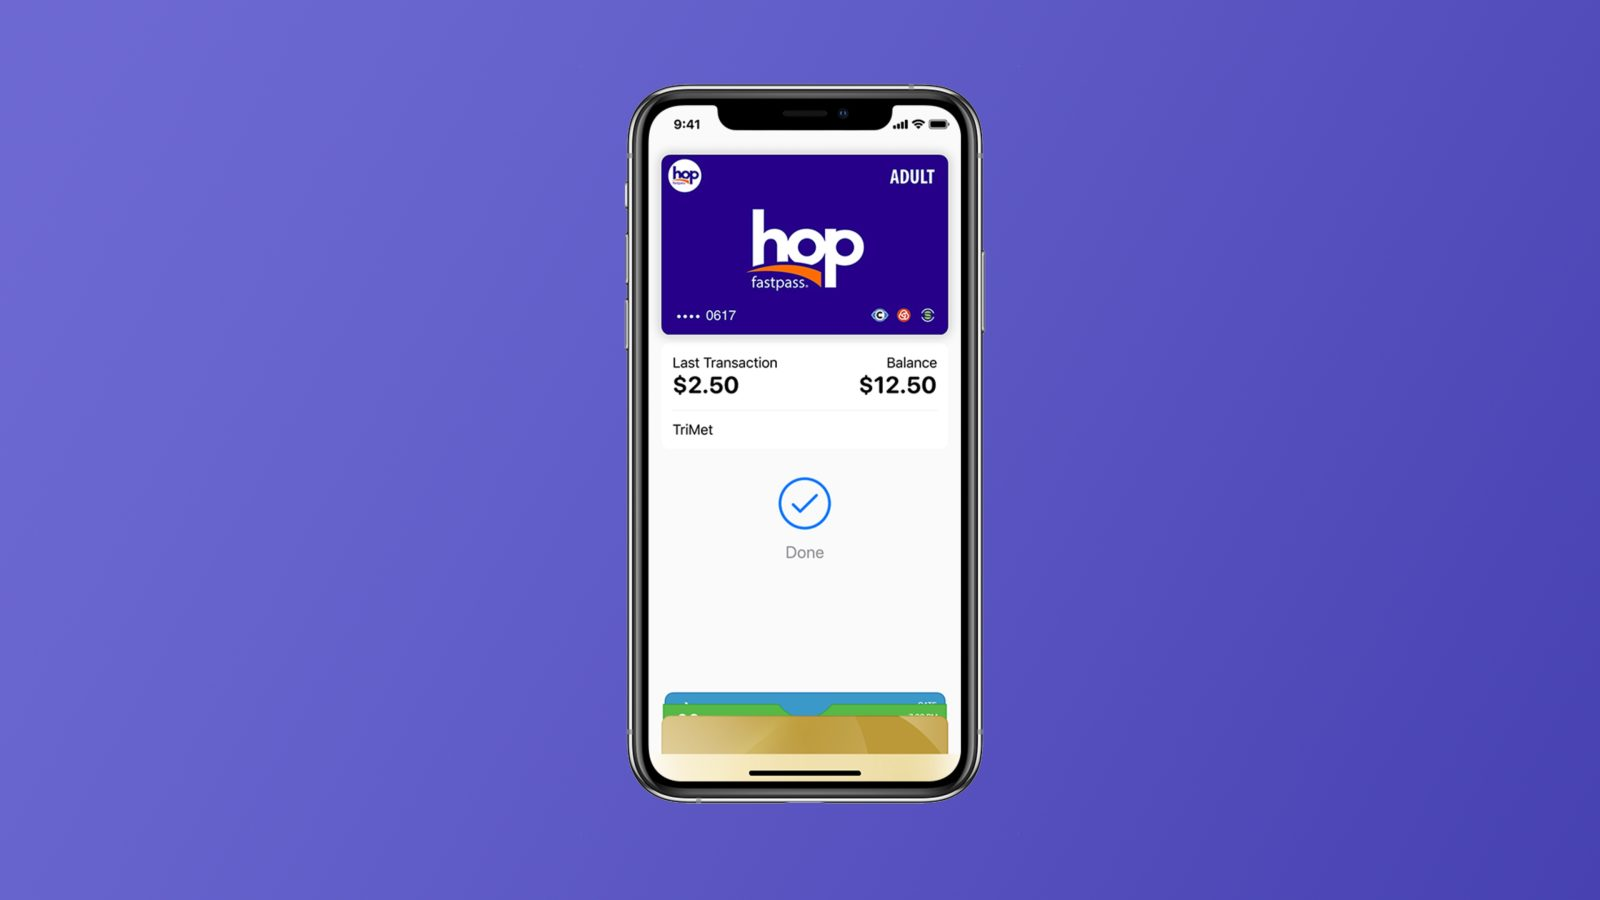 Hop Fastpass Adds Apple Pay Support for Transit Riders in Portland